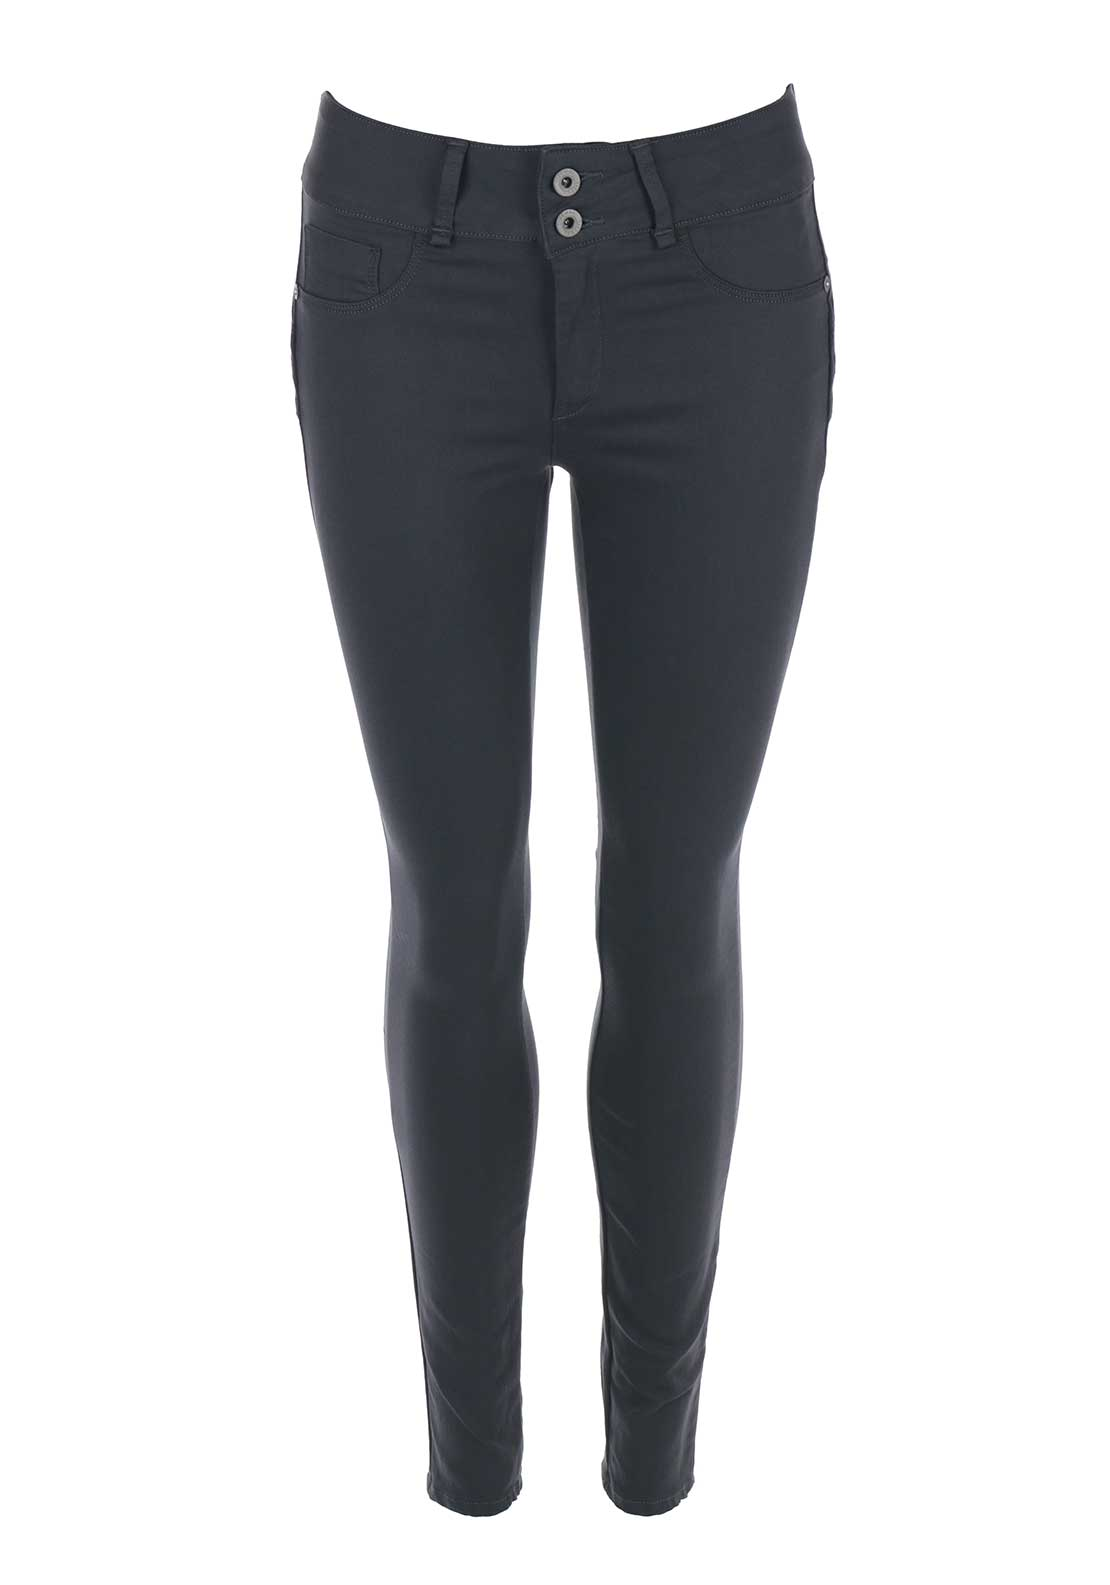 Tiffosi Womens One Size Double Up Skinny Jeans, Grey